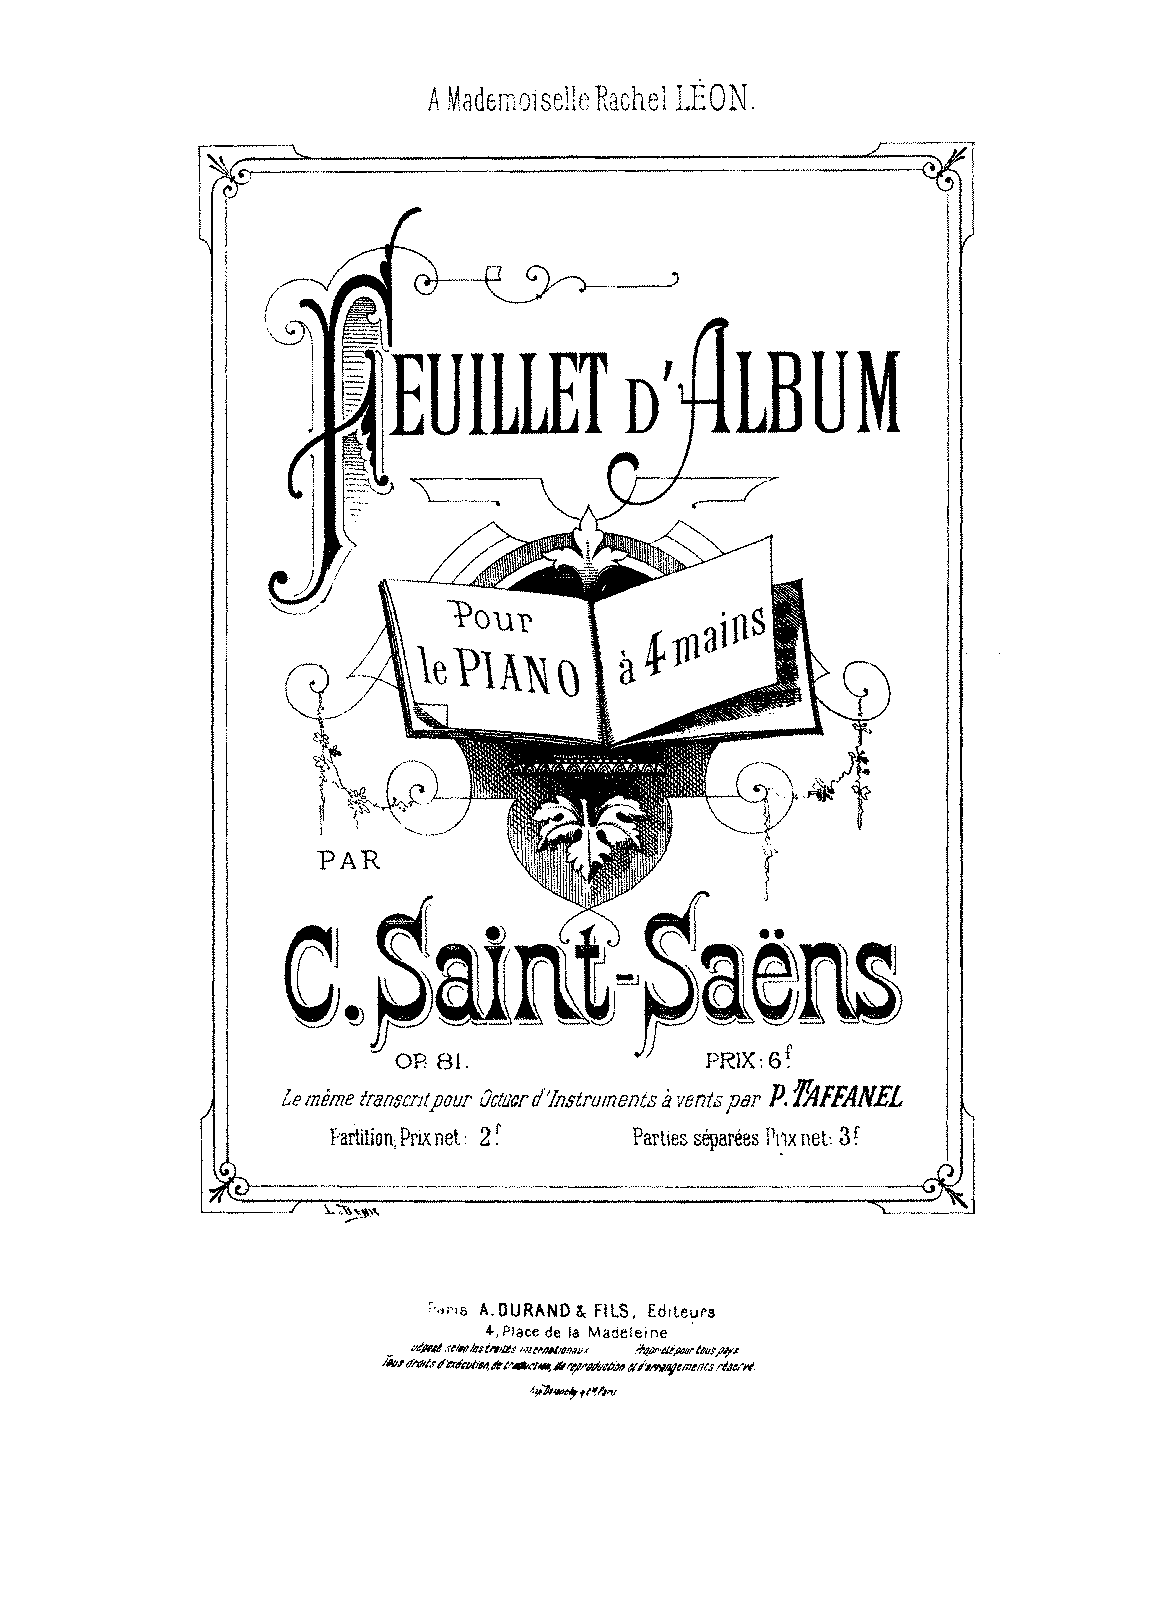 Saint-Saens Feuillet album piano 4 hands.pdf